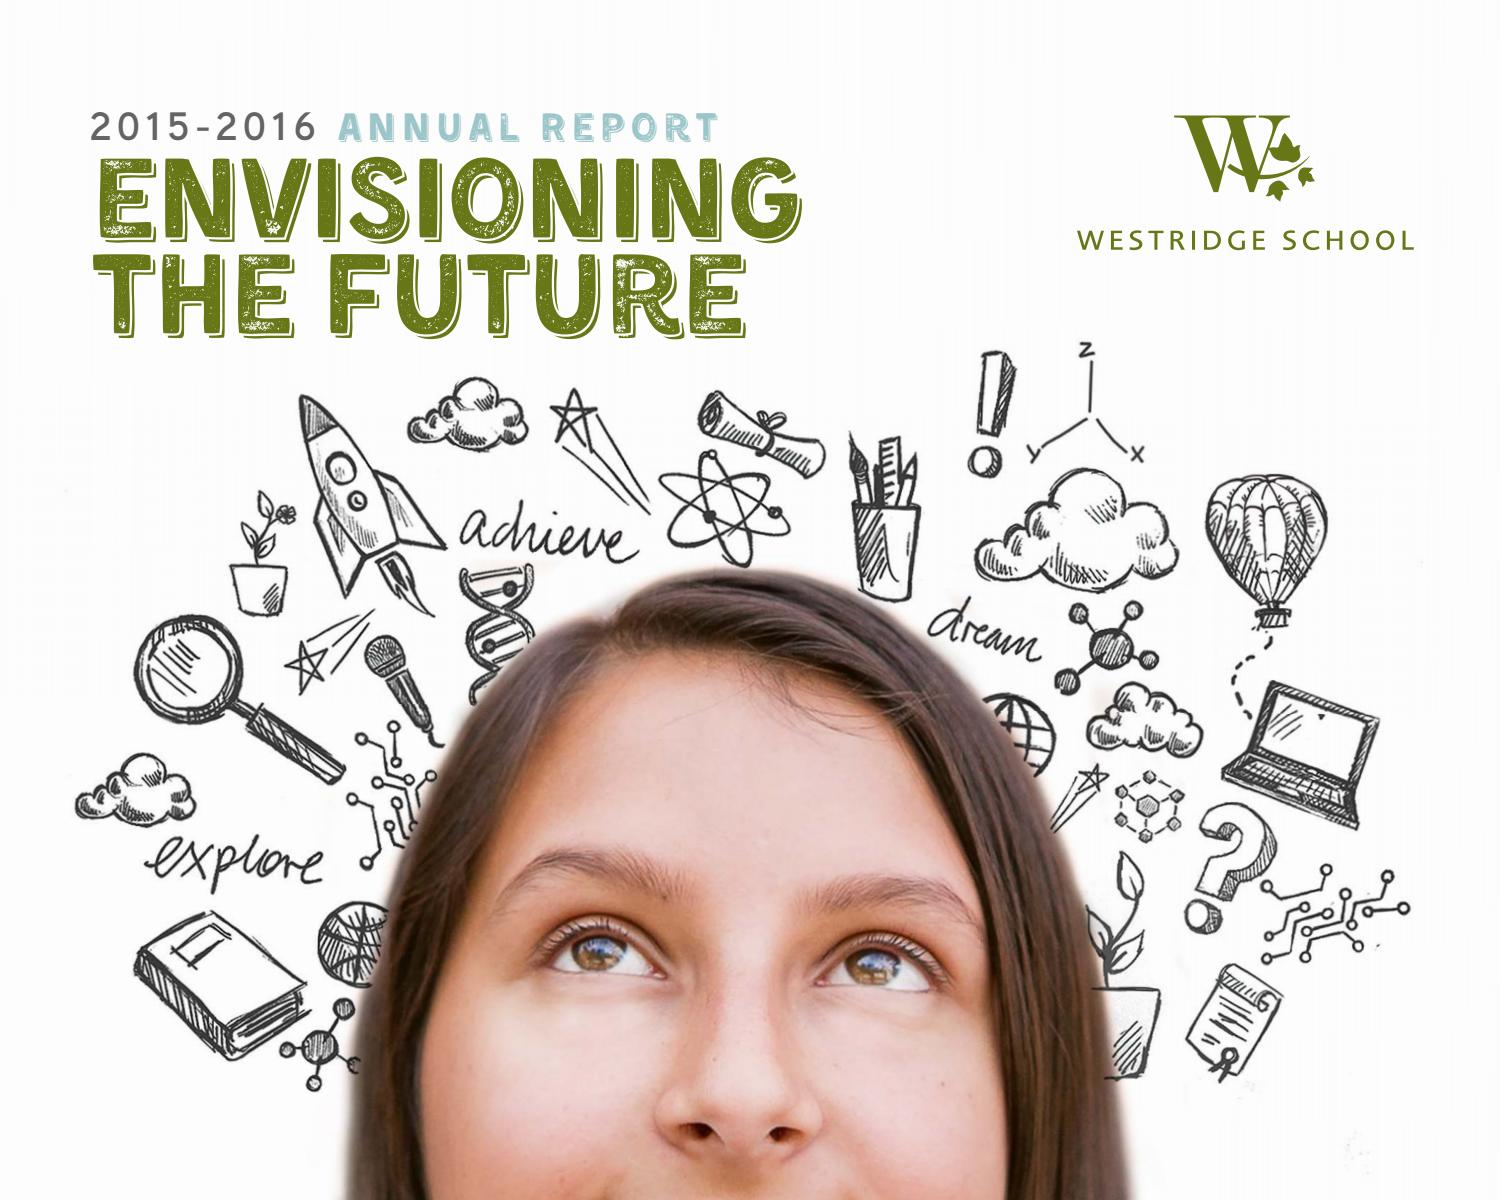 2015 2016 Annual Report Full By Westridge School Issuu